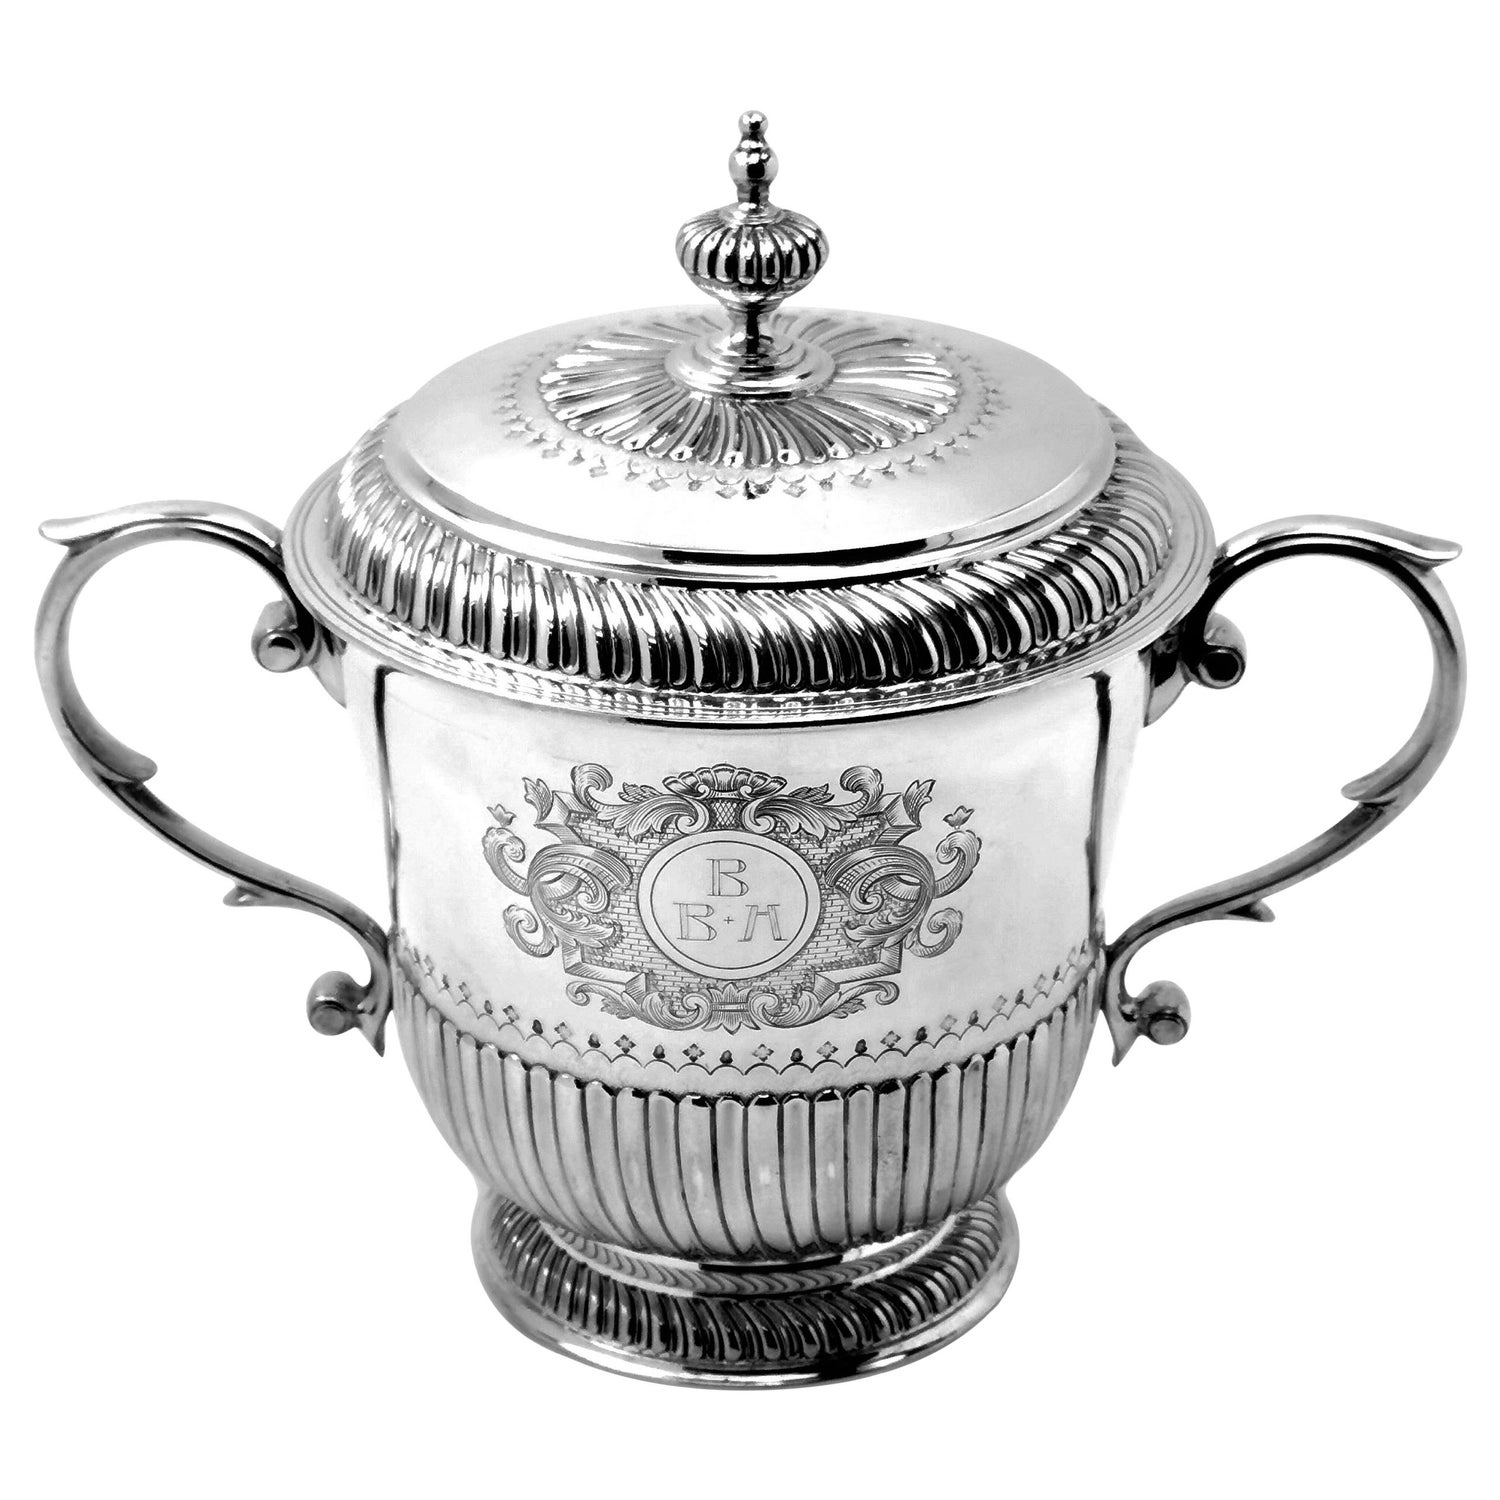 Antique Silver Lidded Porringer Cup & Cover 1911 William III 17th Century Style